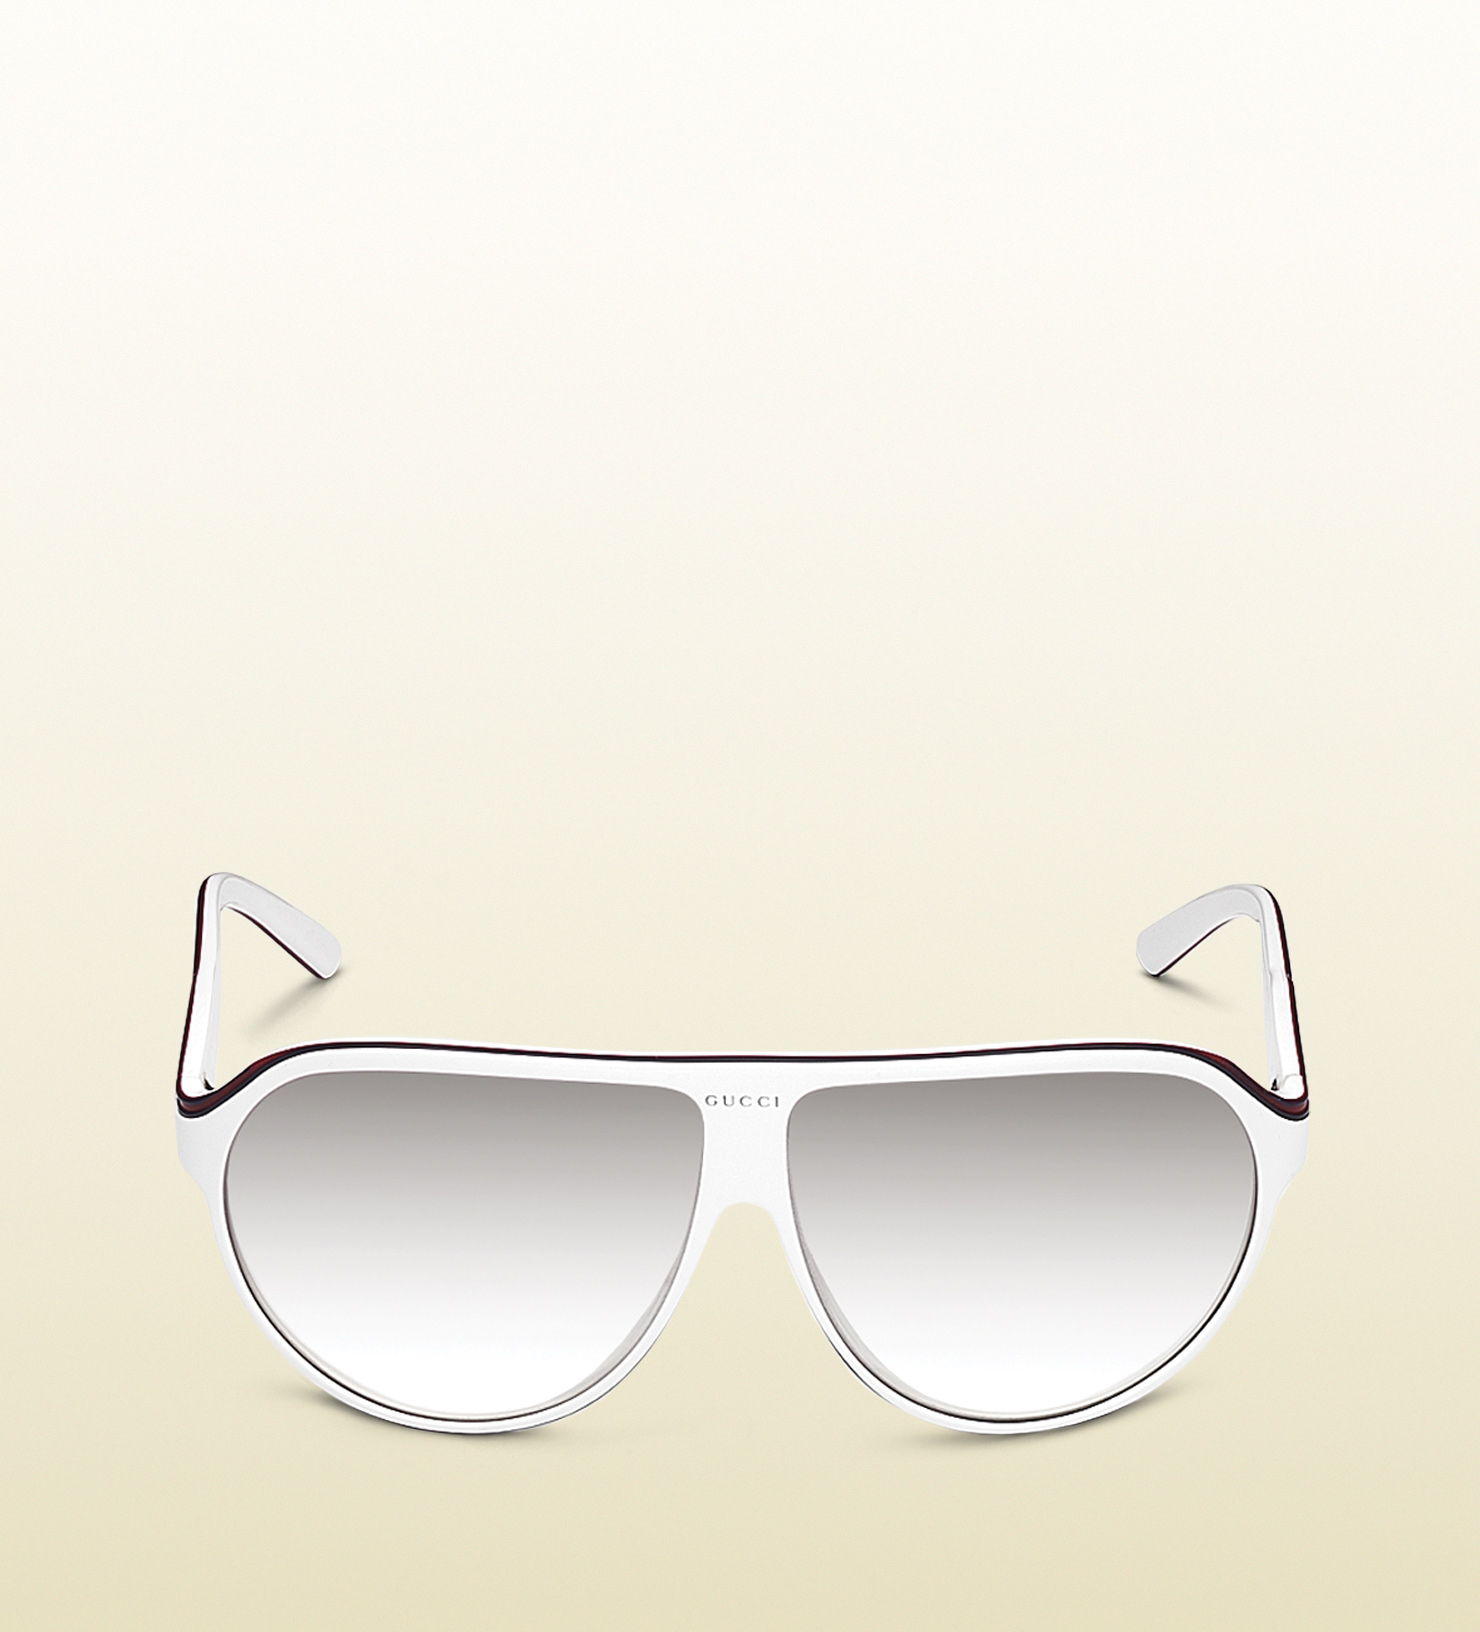 032546e0a3a Lyst - Gucci Large Aviator Frame Sunglasses with Gucci Trademark ...